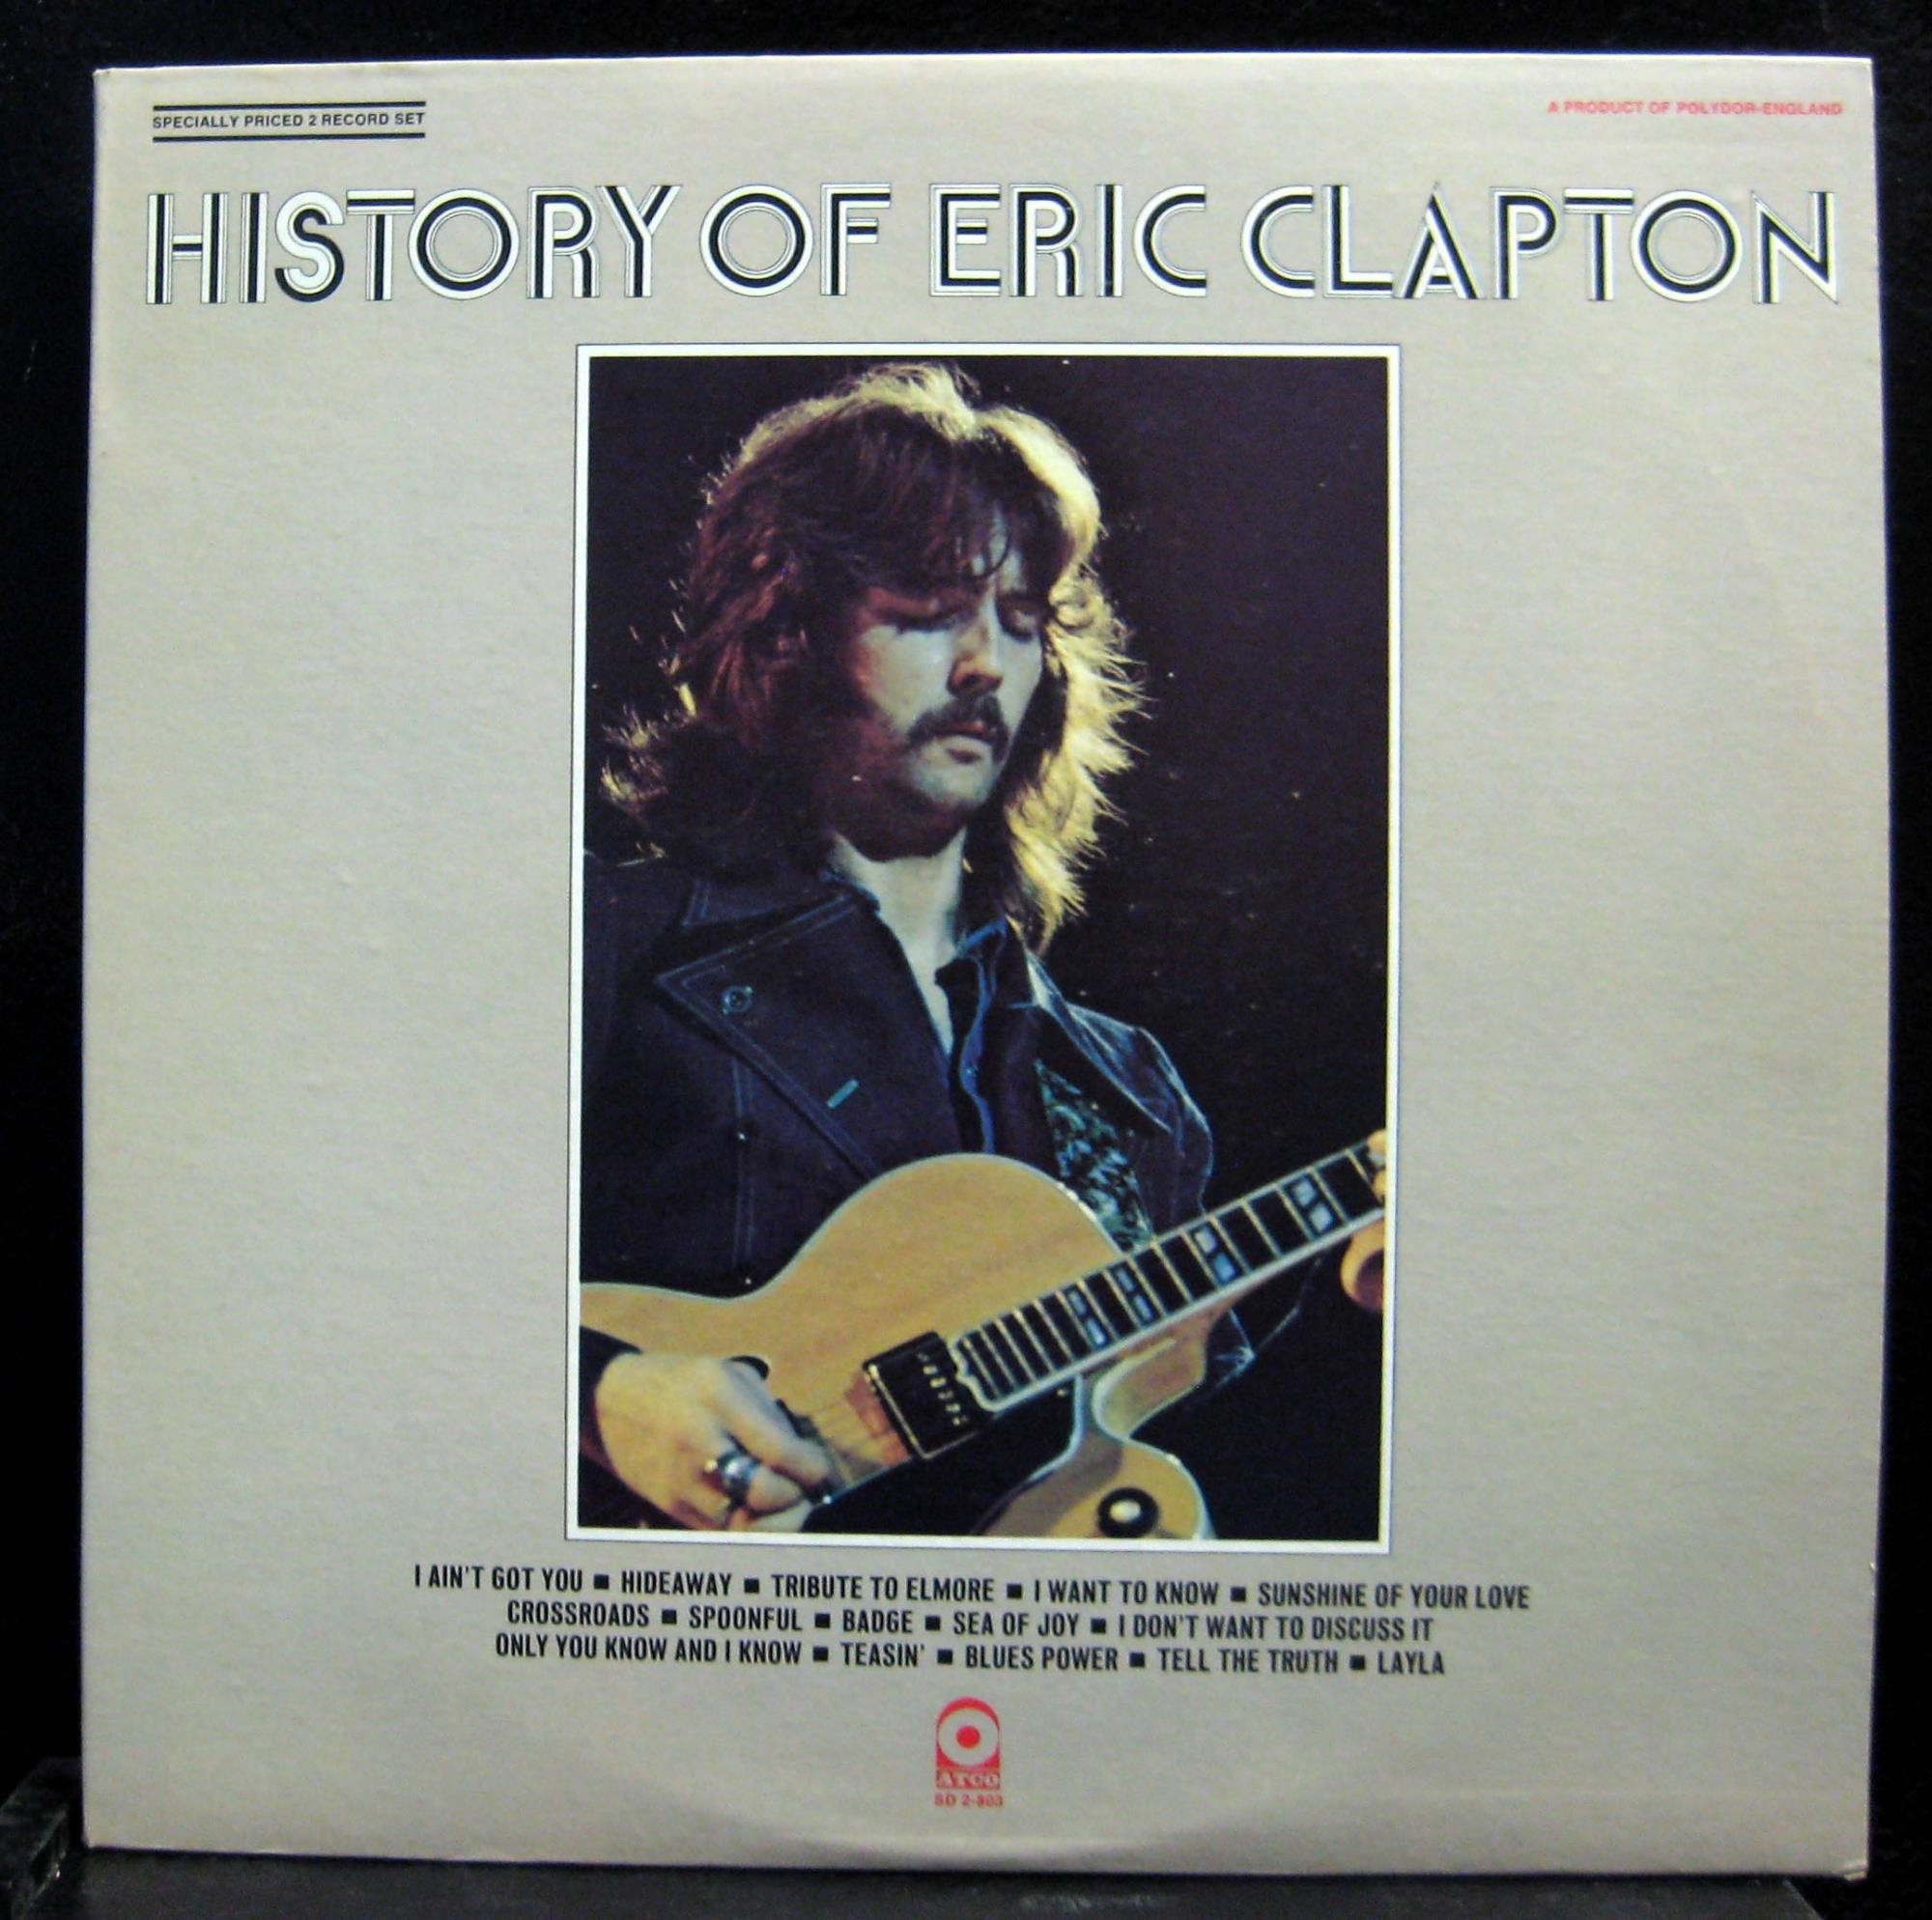 History of Eric Clapton by Atco